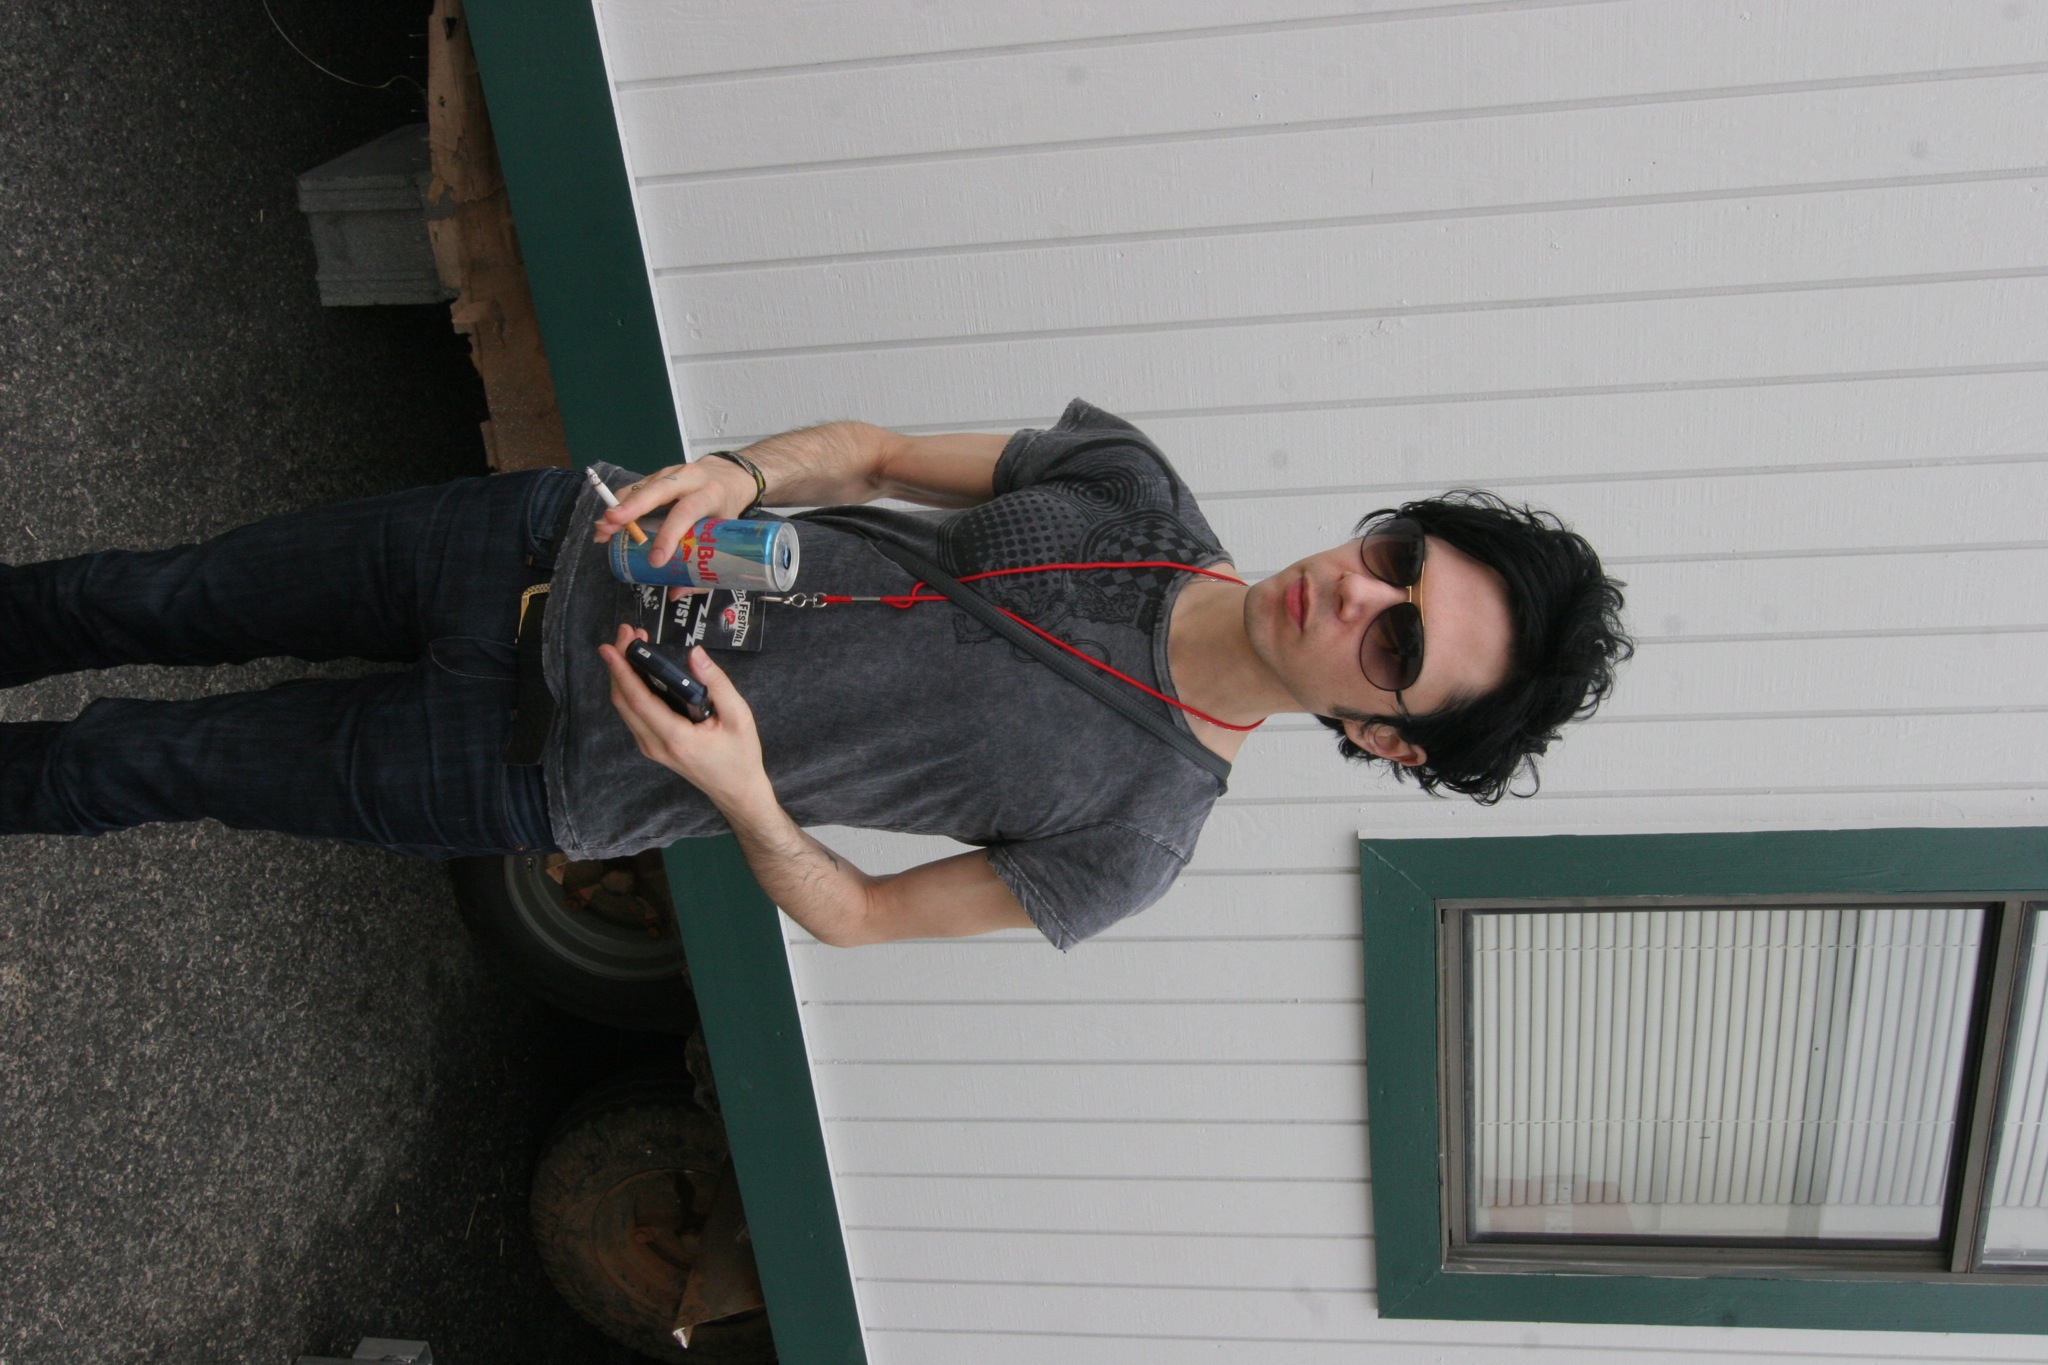 Image of Nick Zinner from Wikidata